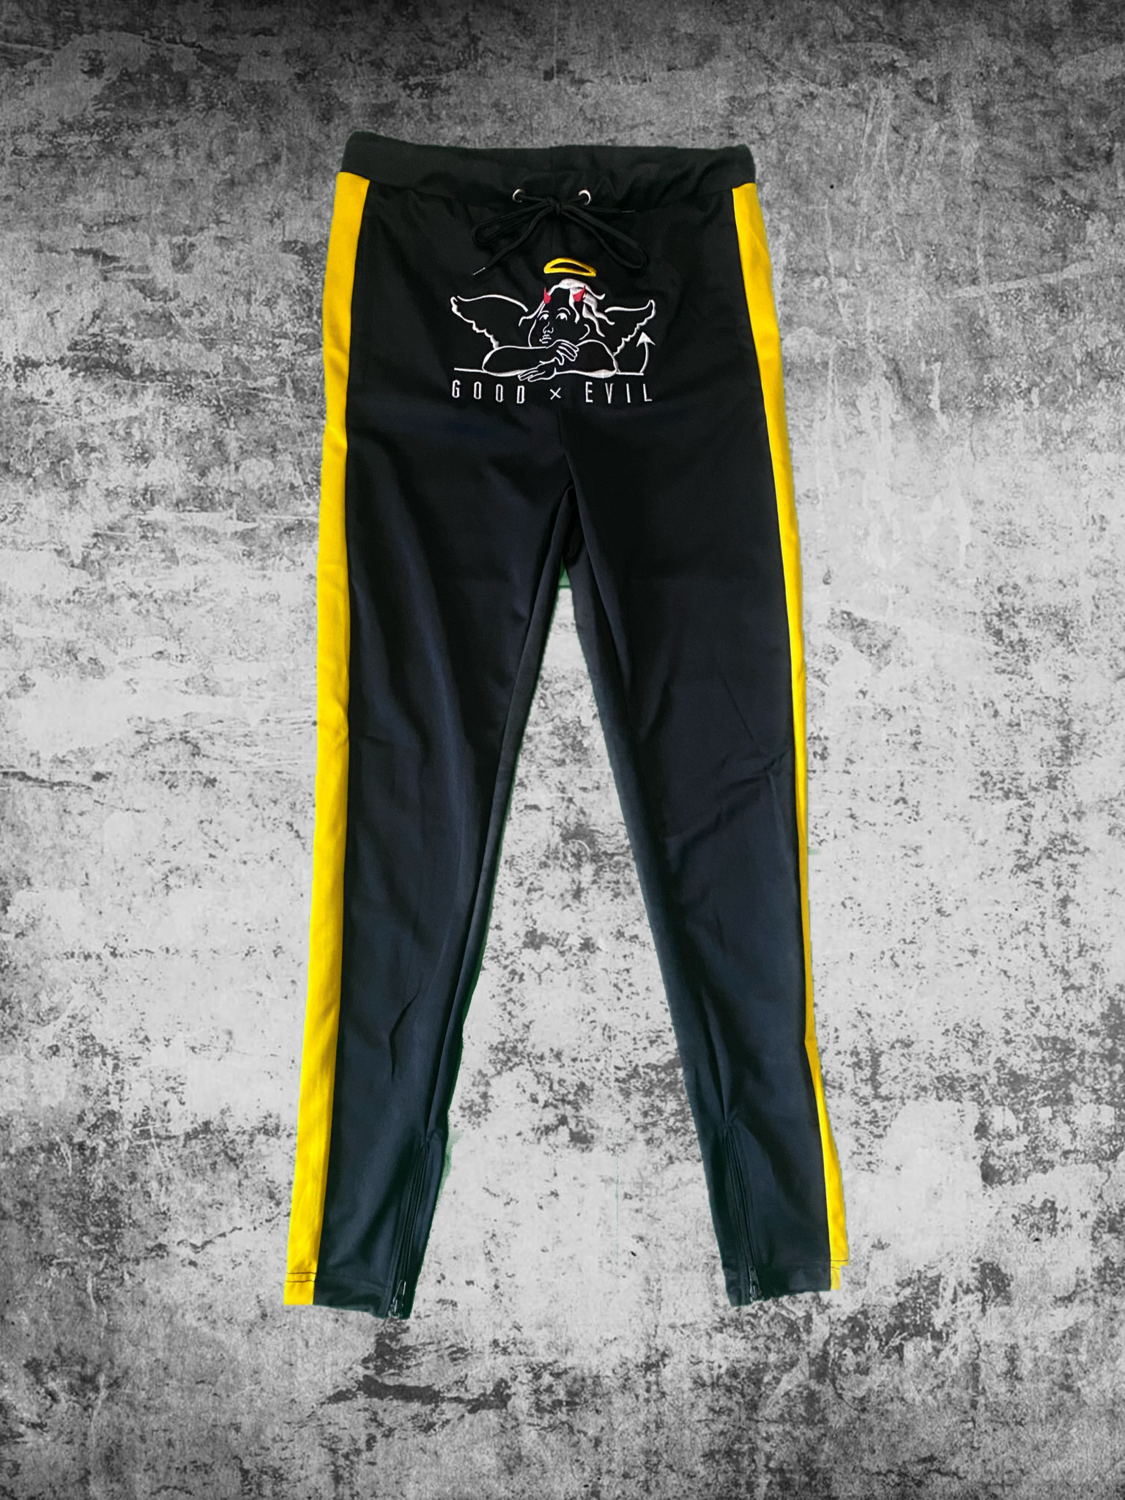 Good x Evil Joggers (blk/yellow)